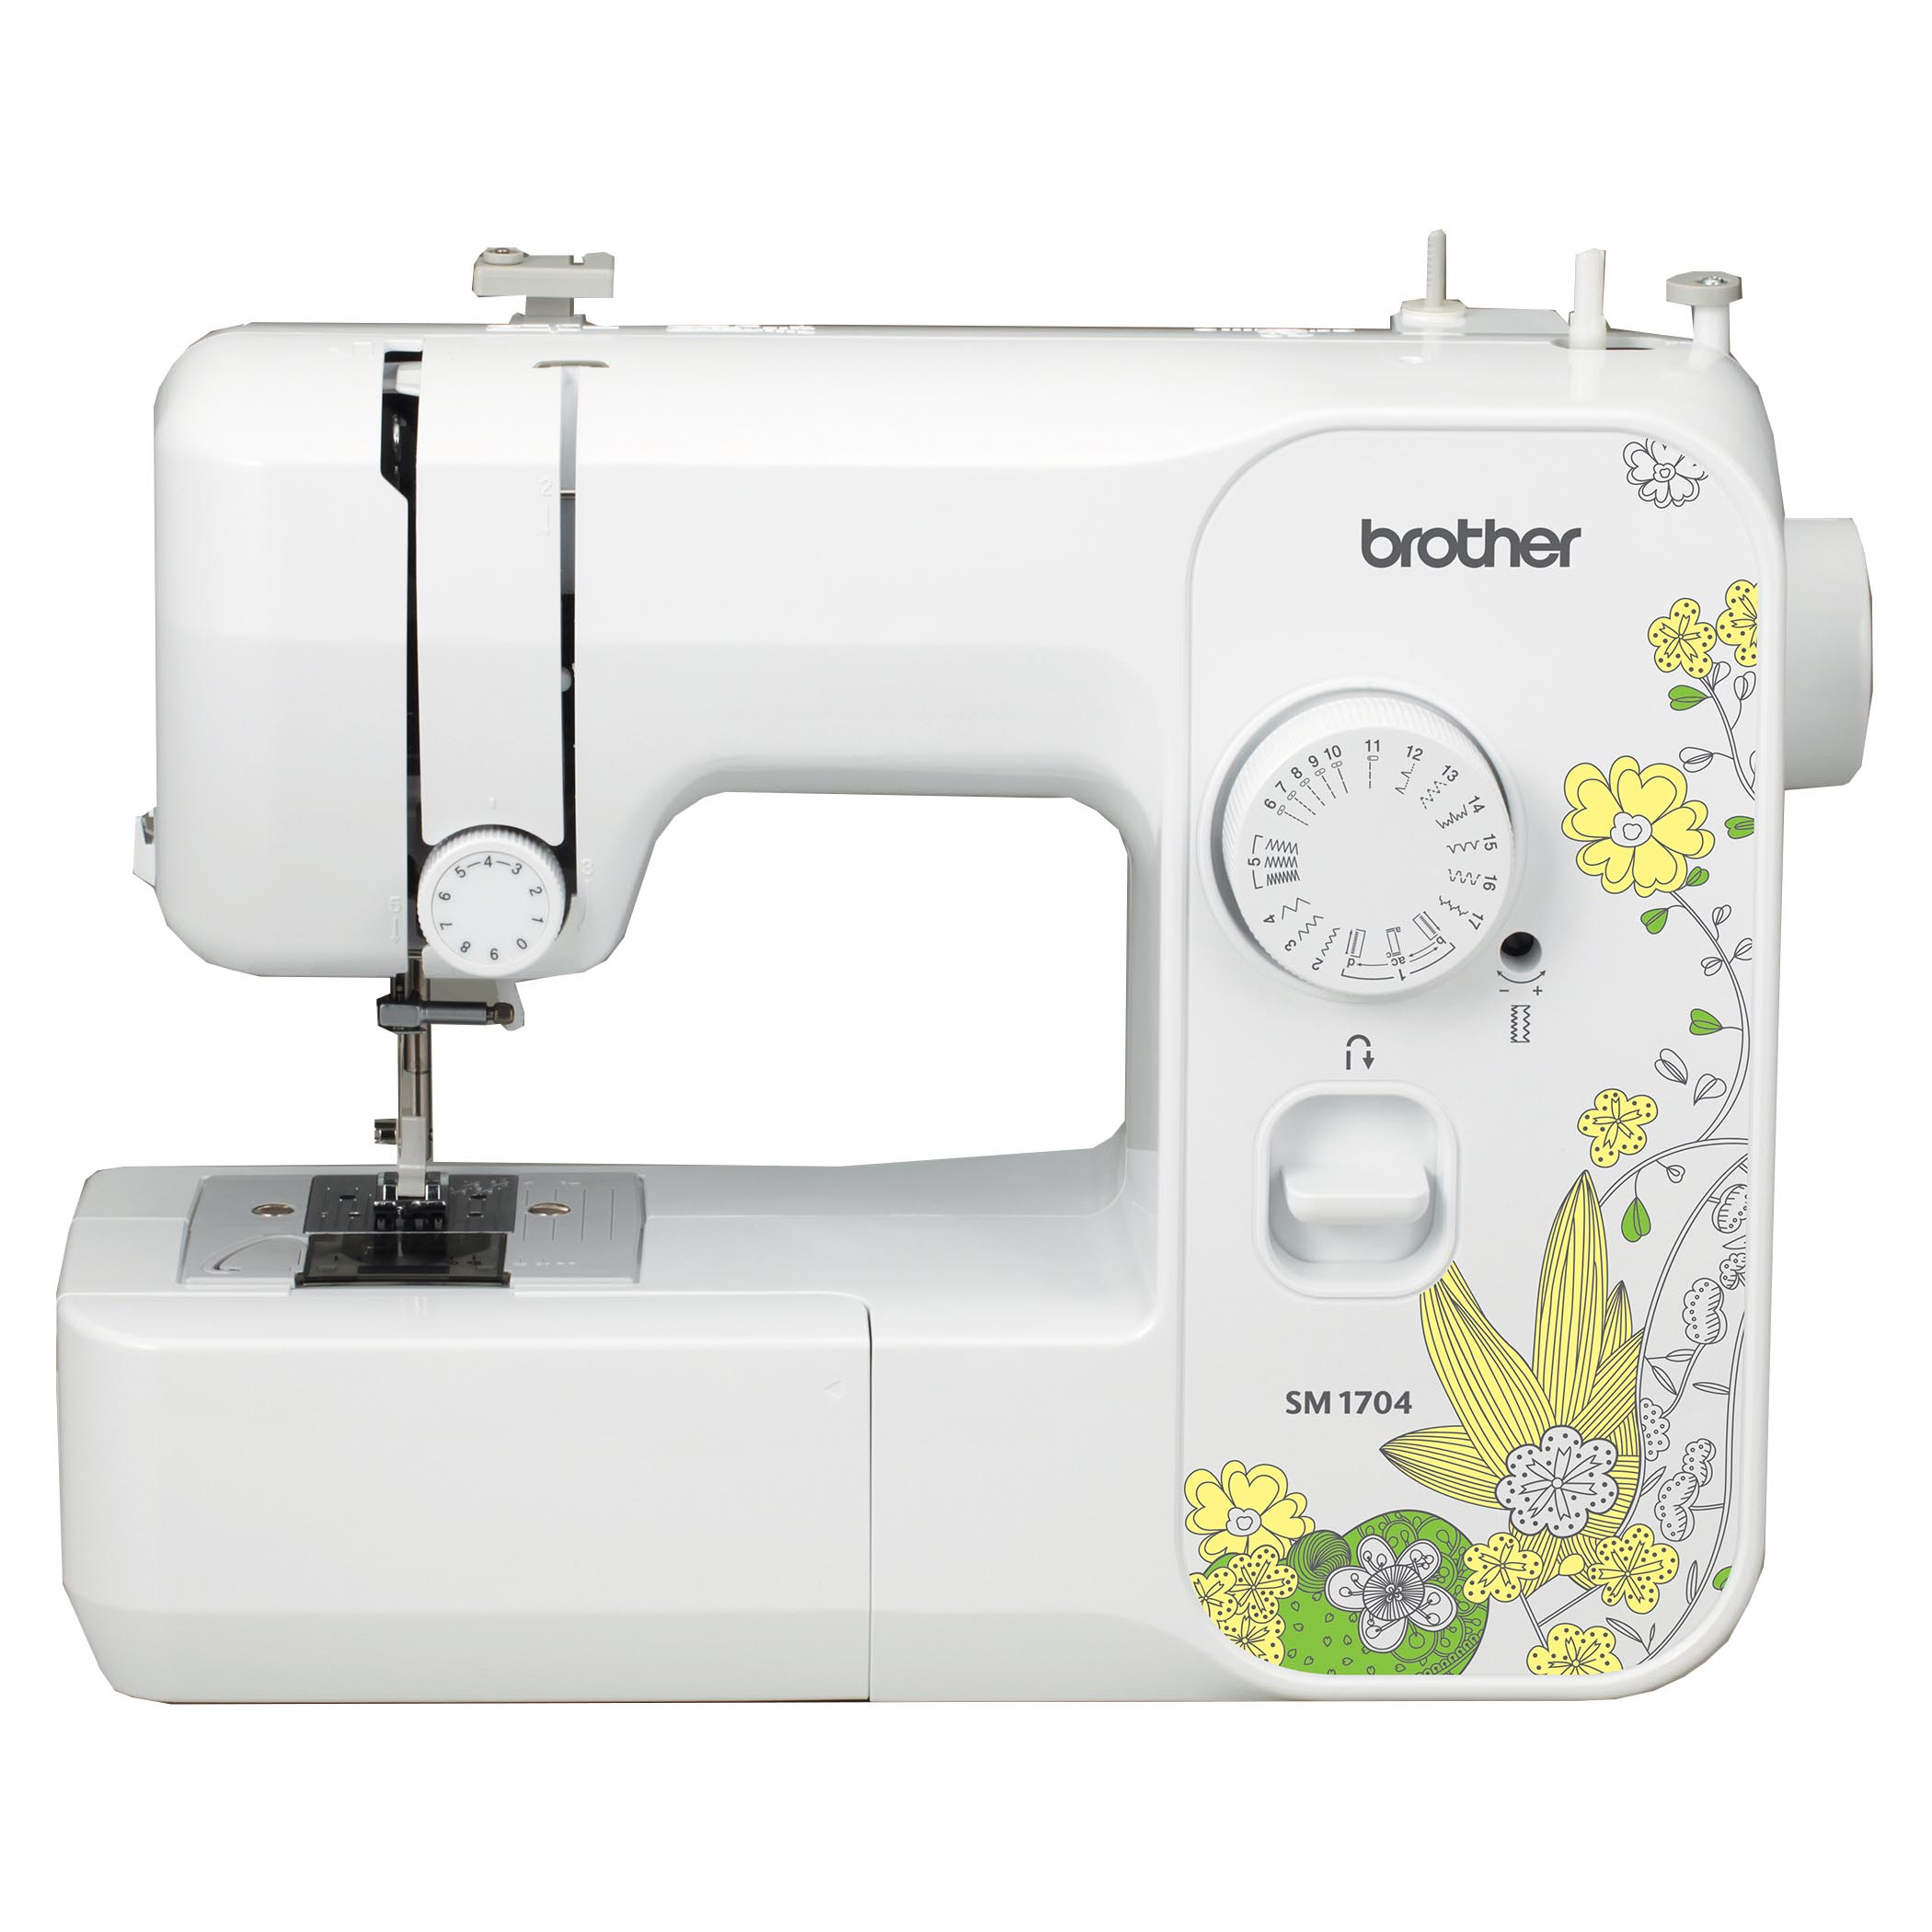 Brother SM1704 Lightweight, Full Size Sewing Machine With 17 Stitches and 4 Sewing Feet